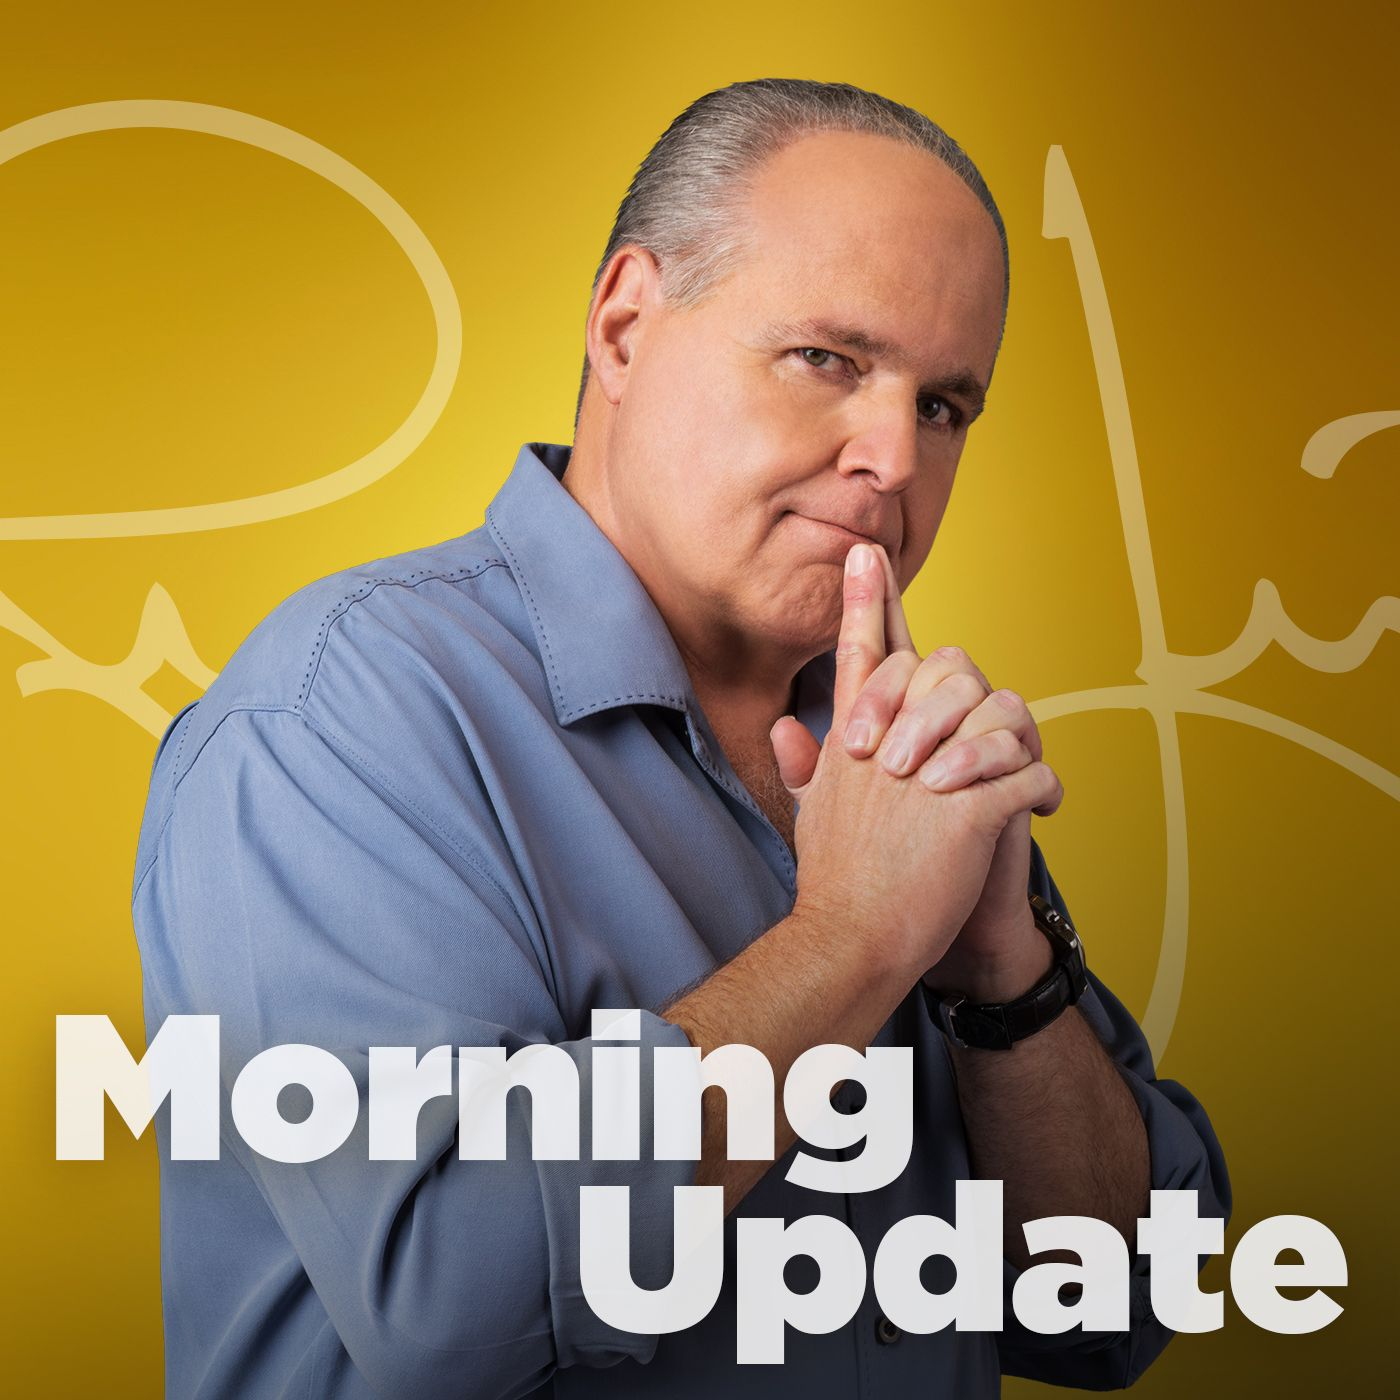 Rush Limbaugh Jan 28, 2020